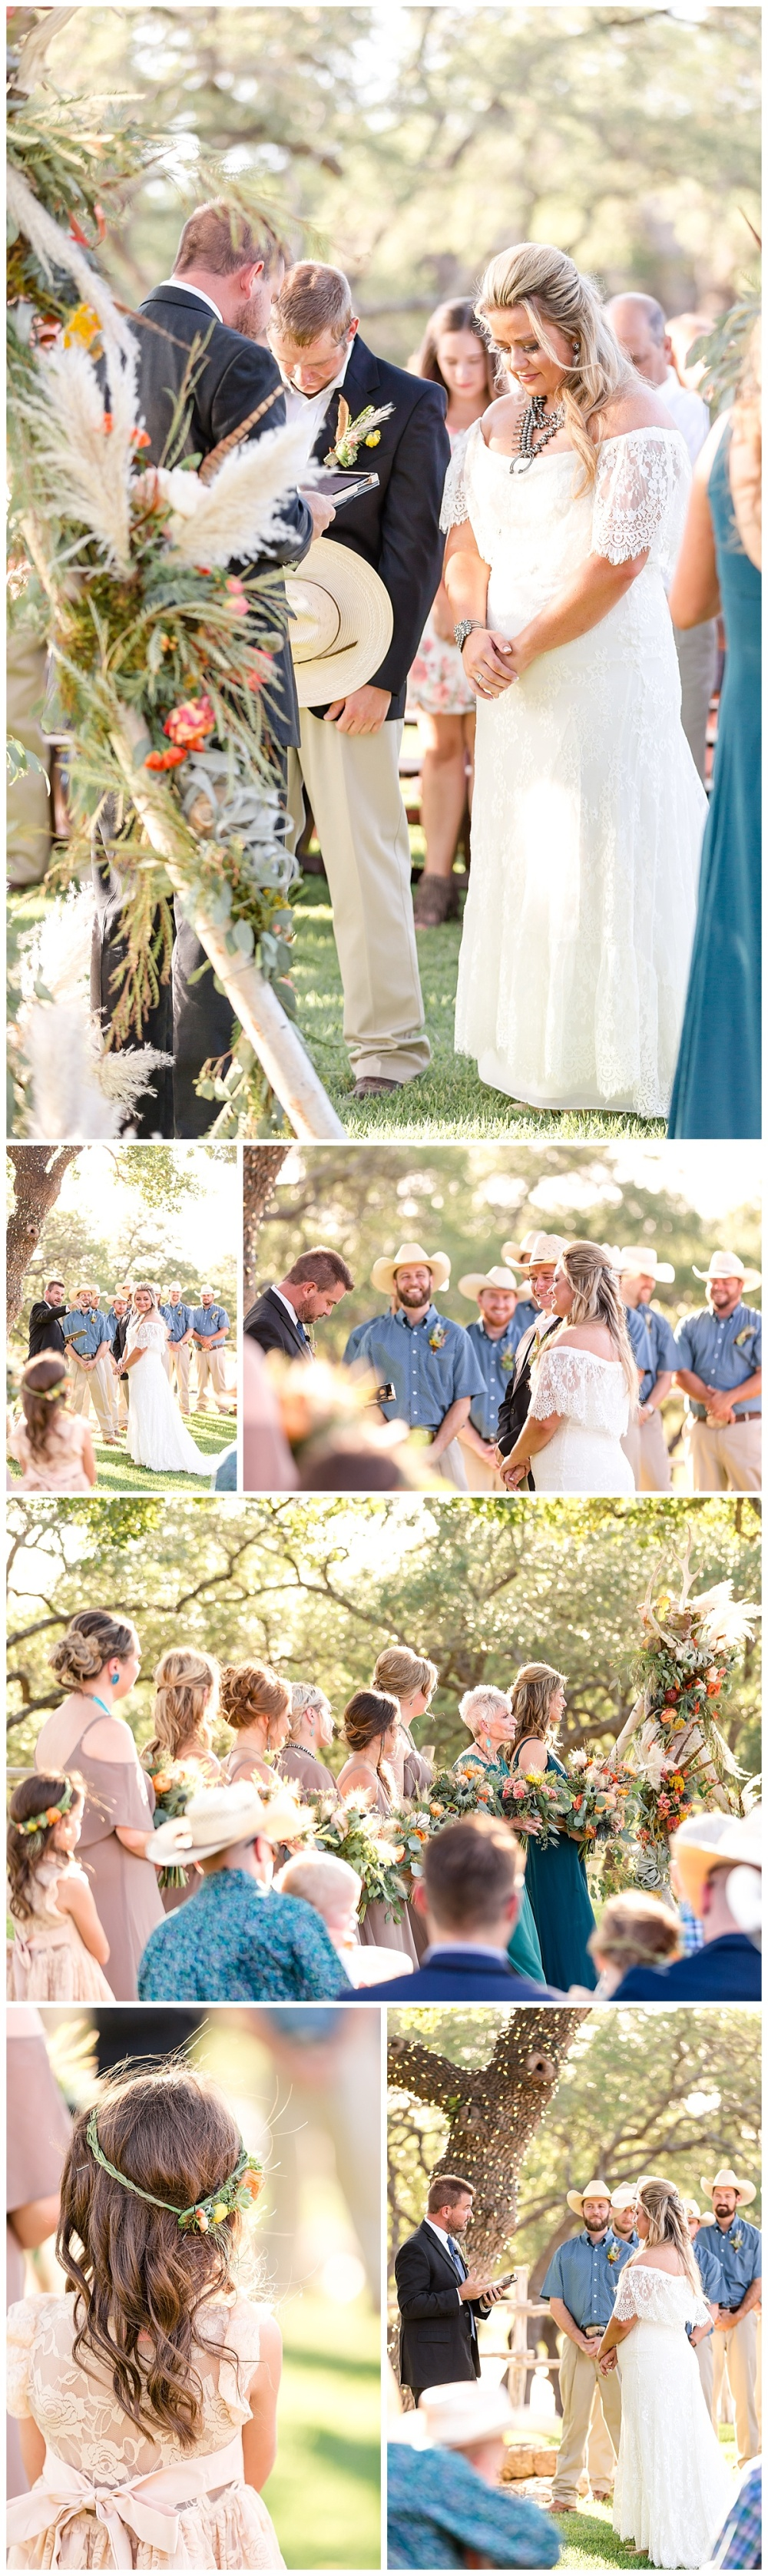 Texas-Wedding-Photographer-Braded-T-Ranch-Kendalia-Bride-Groom-Southwestern-Style-Carly-Barton-Photography-Vogt_0029.jpg